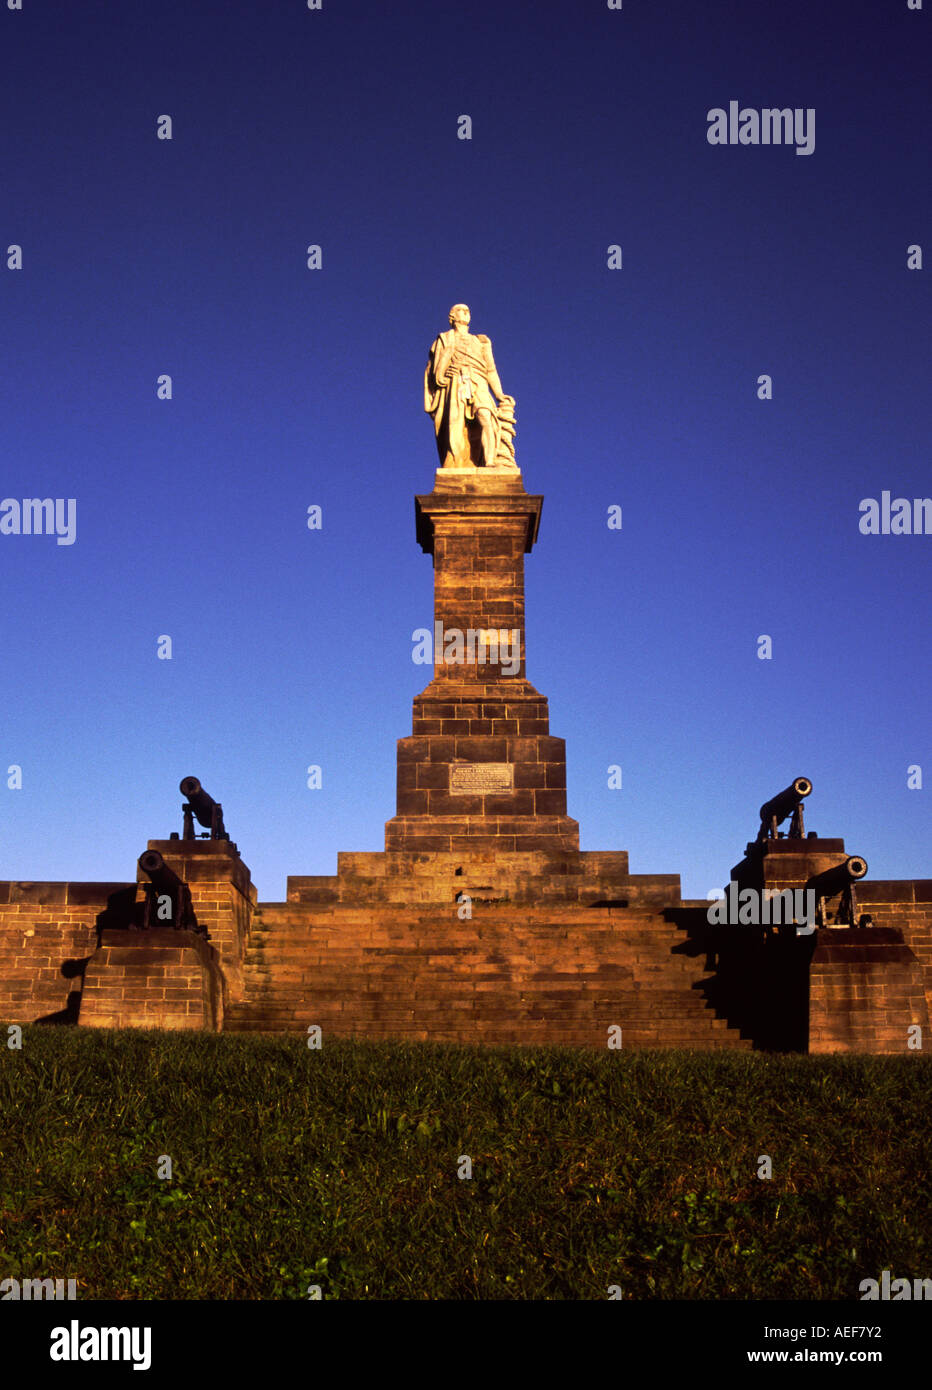 Lord collingwood Statue Stock Photo